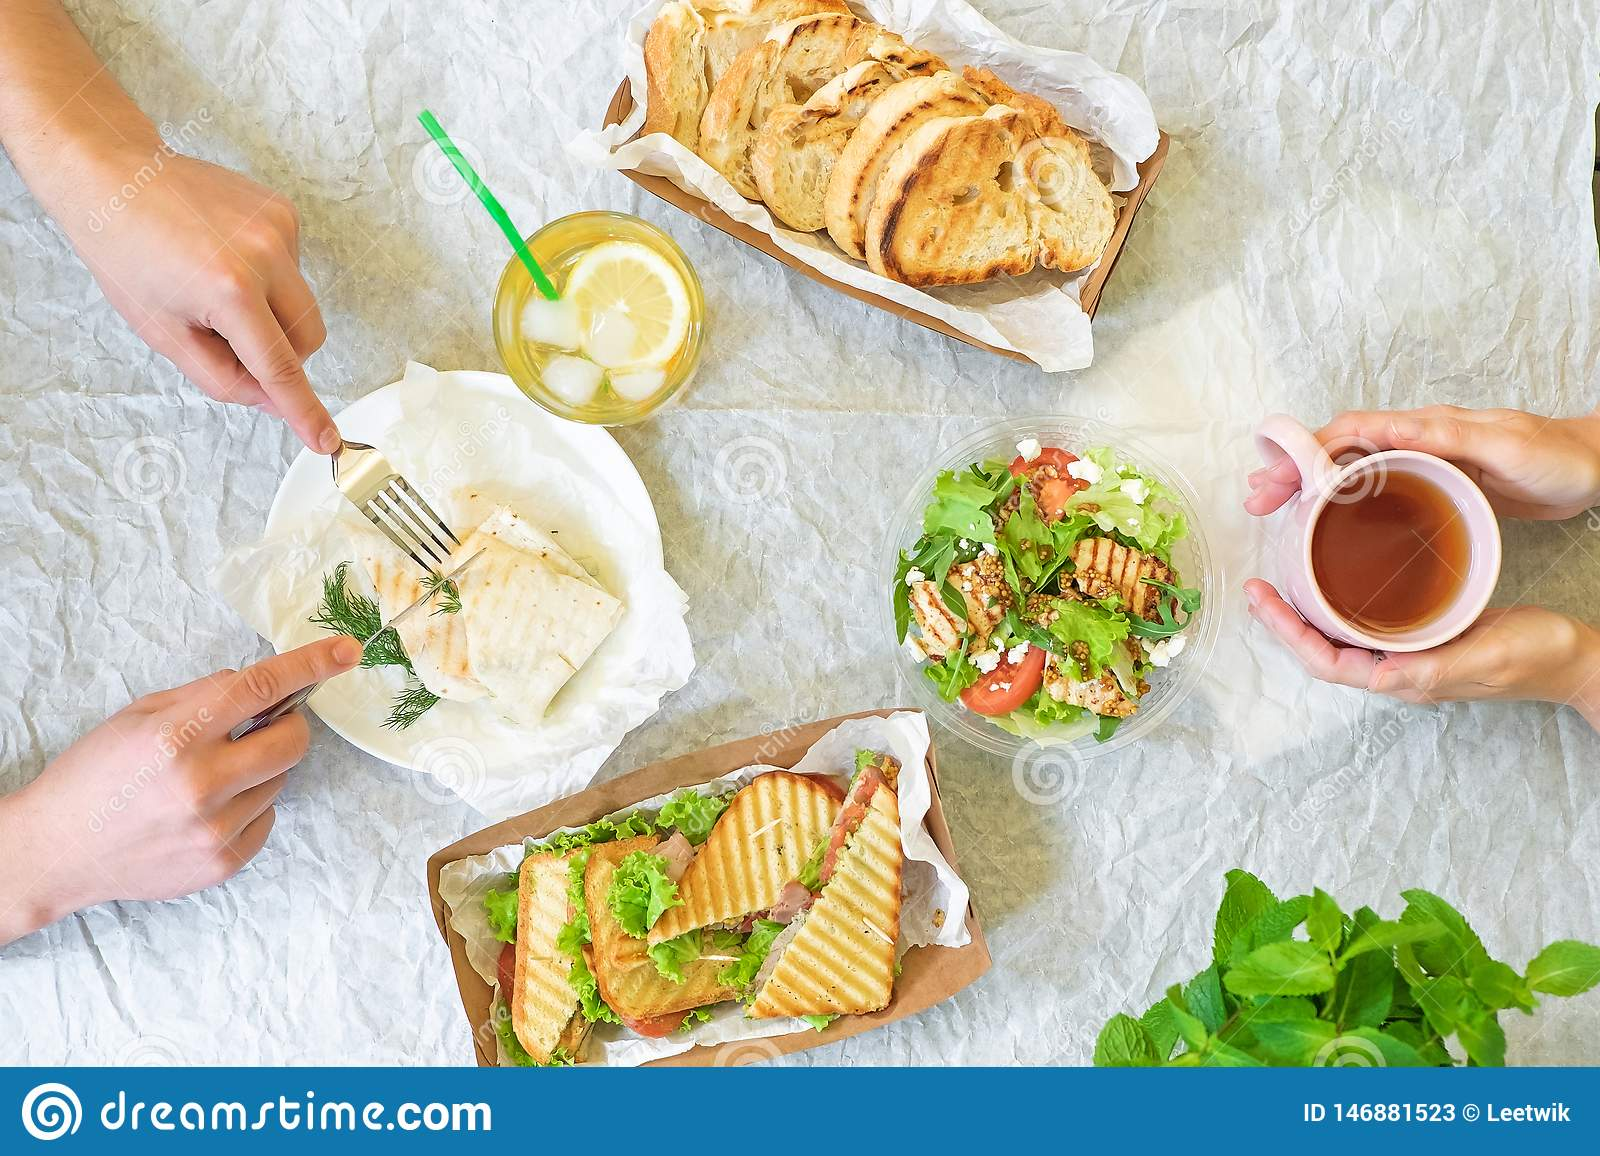 Caesar salad, bruschetta, ham and tomato sandwiches table with hands, top view from above